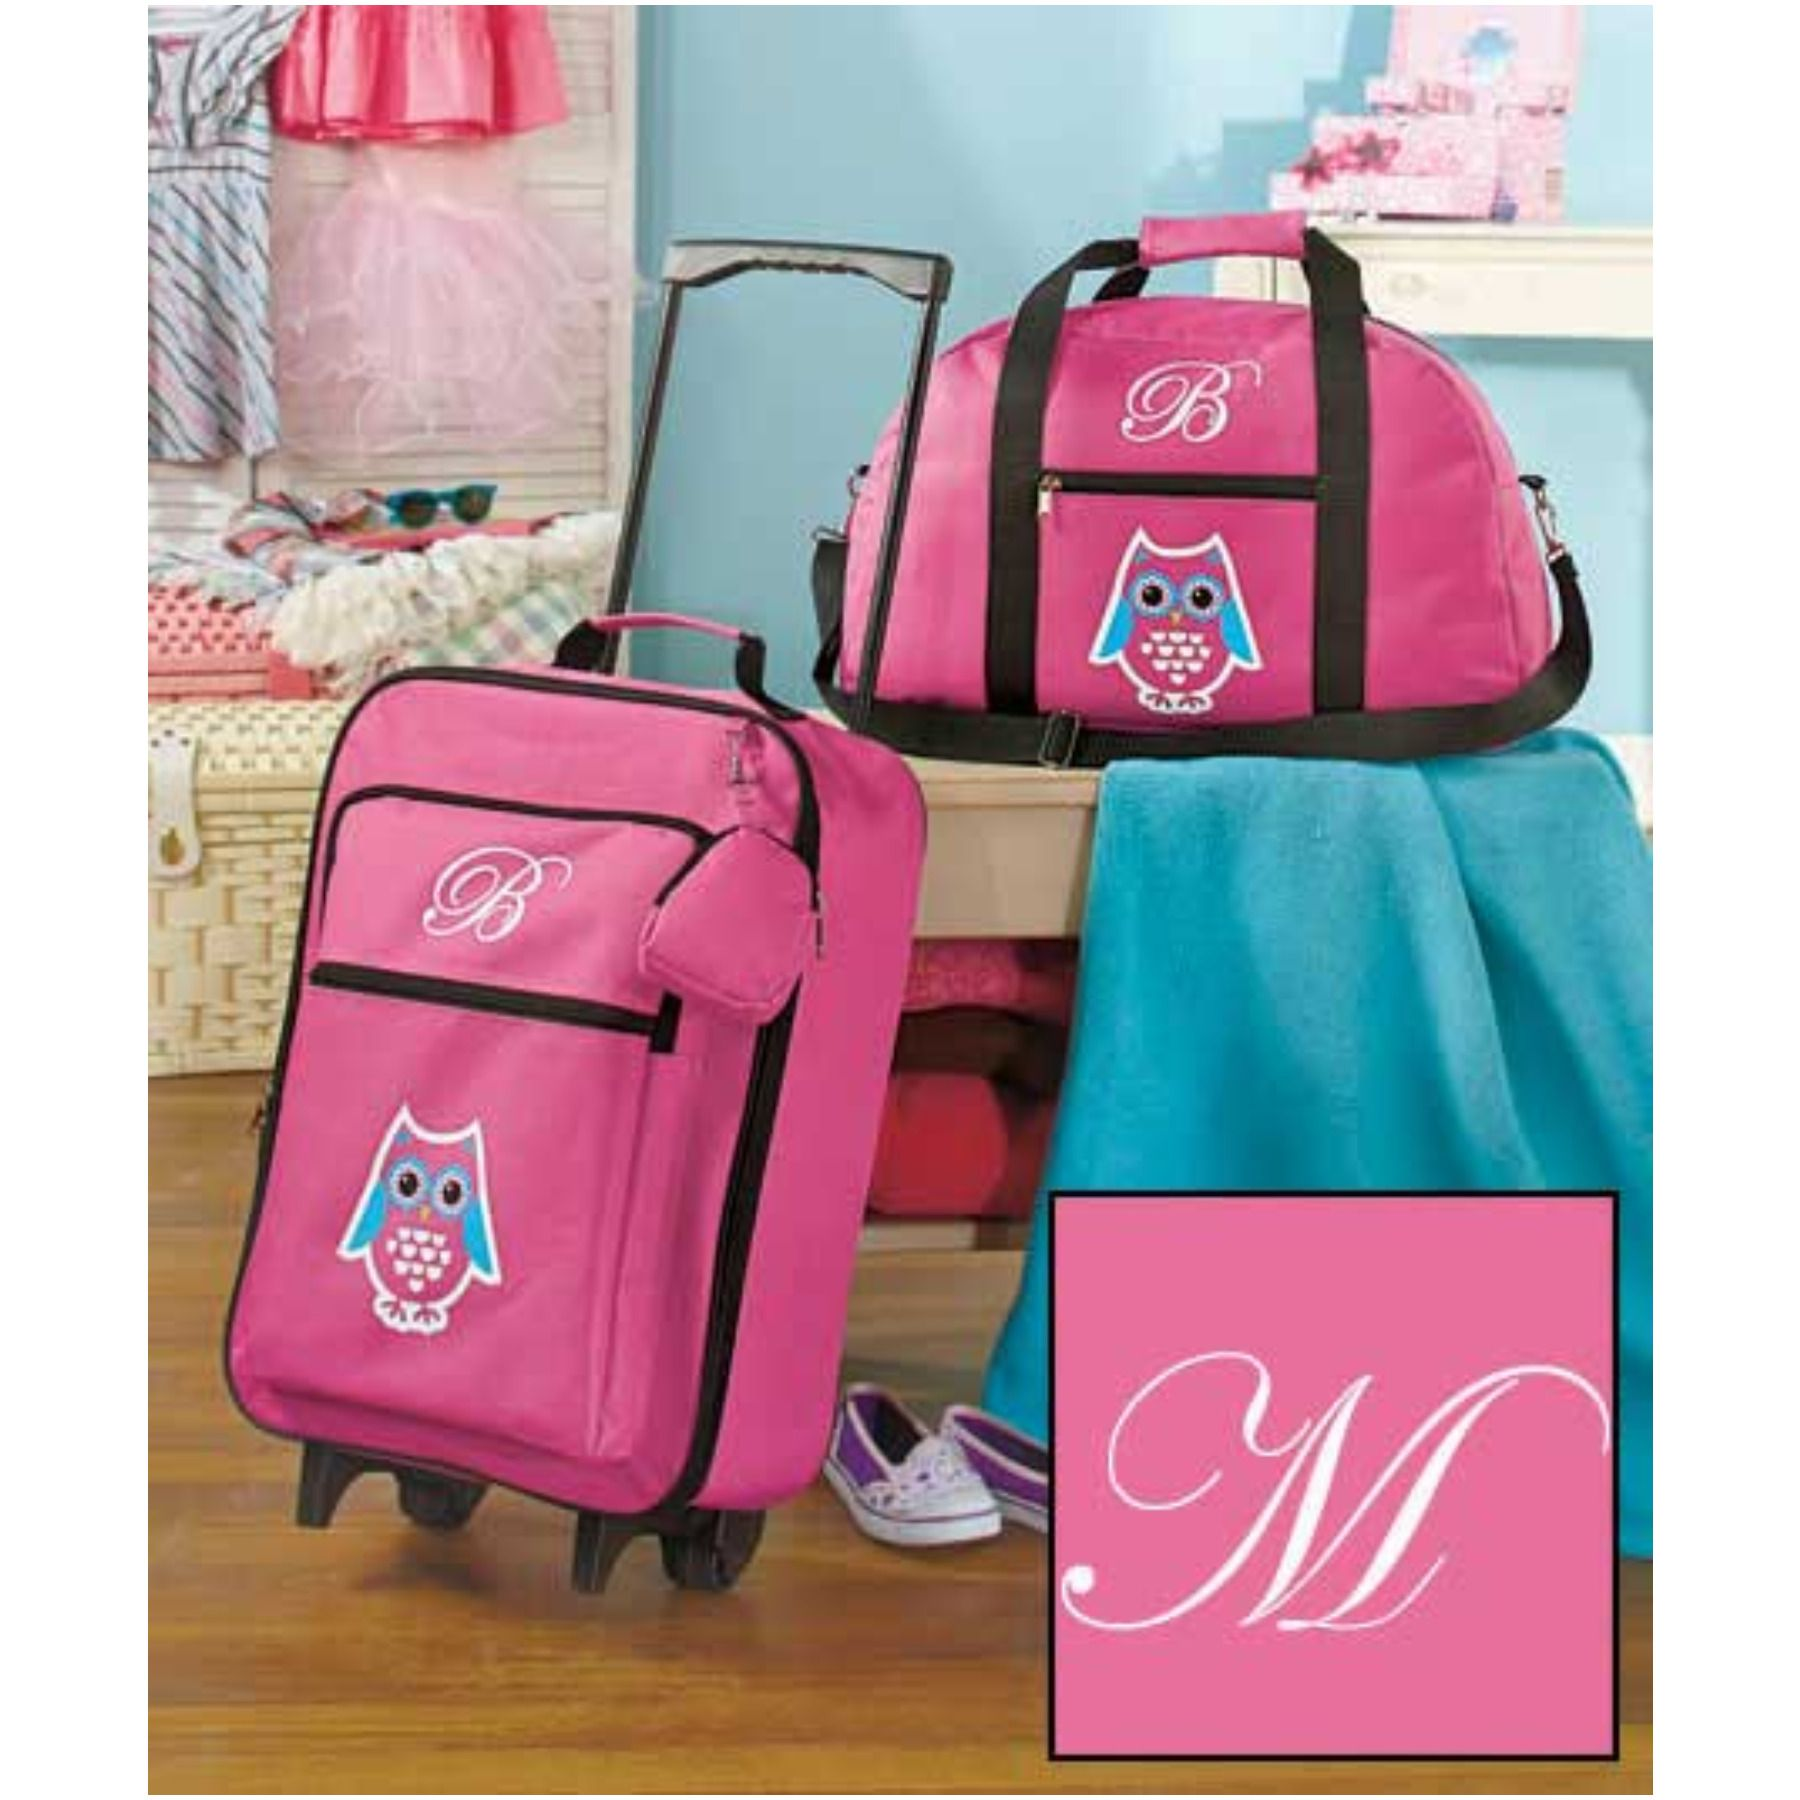 Pink Polka Dots Girls 3-Piece Monogram Luggage Set Monogram Letter B